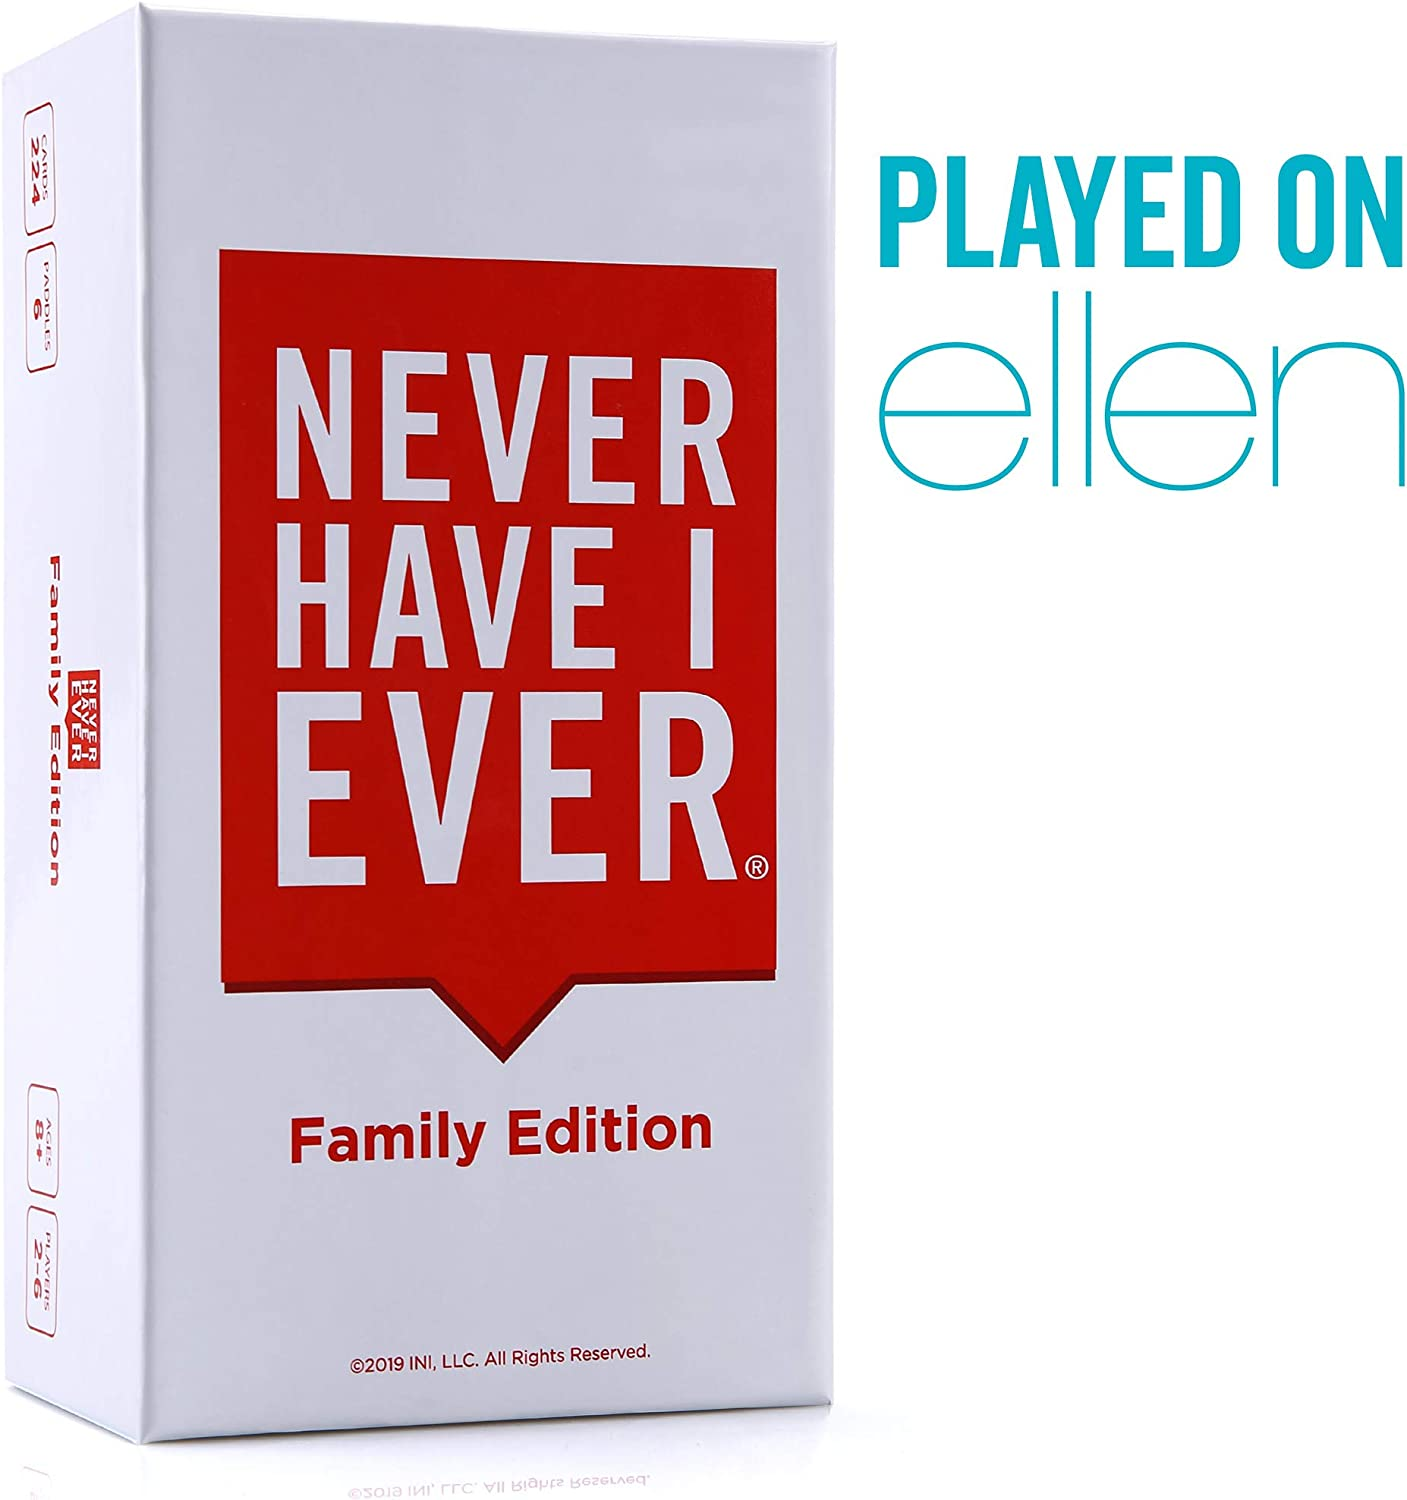 Never Have I Ever   Family Edition Ages 8+   Fun Party Game for The Whole Family - Laugh About Your Past and Relive Your Funny Life Stories